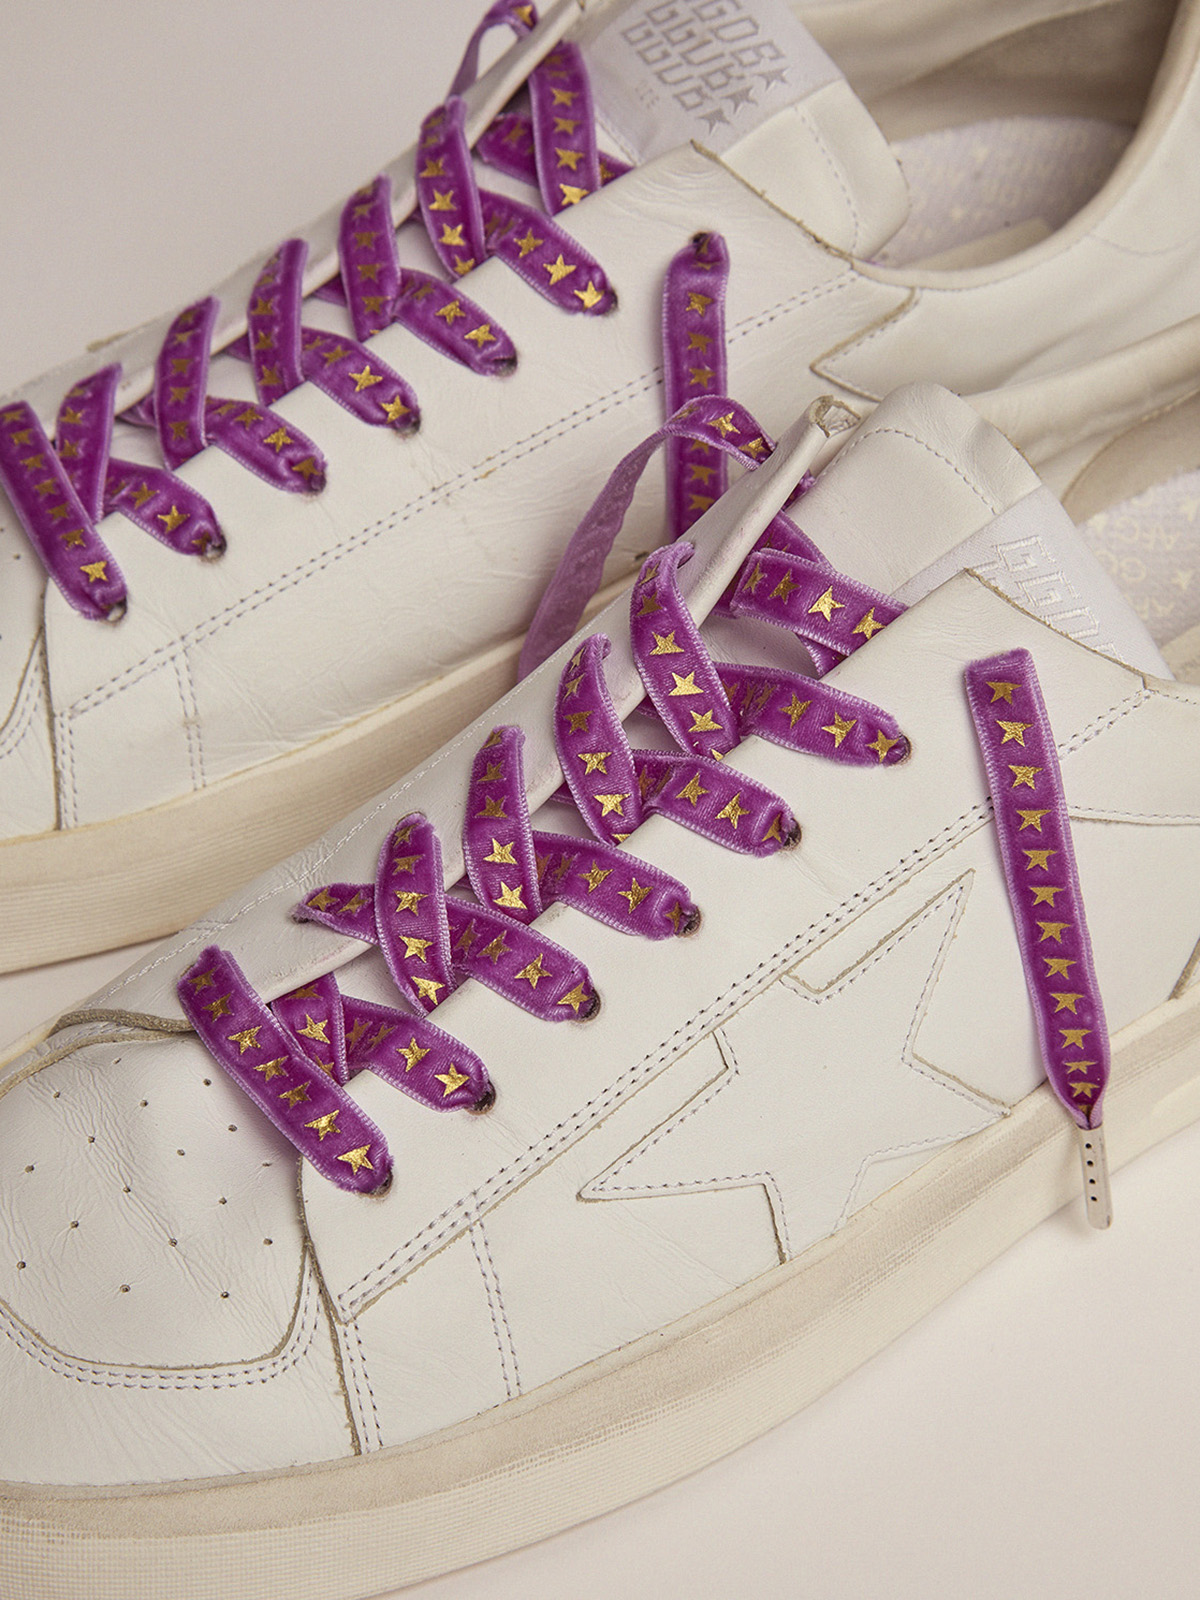 Golden Goose - Lacci donna in velluto viola con stelle dorate in